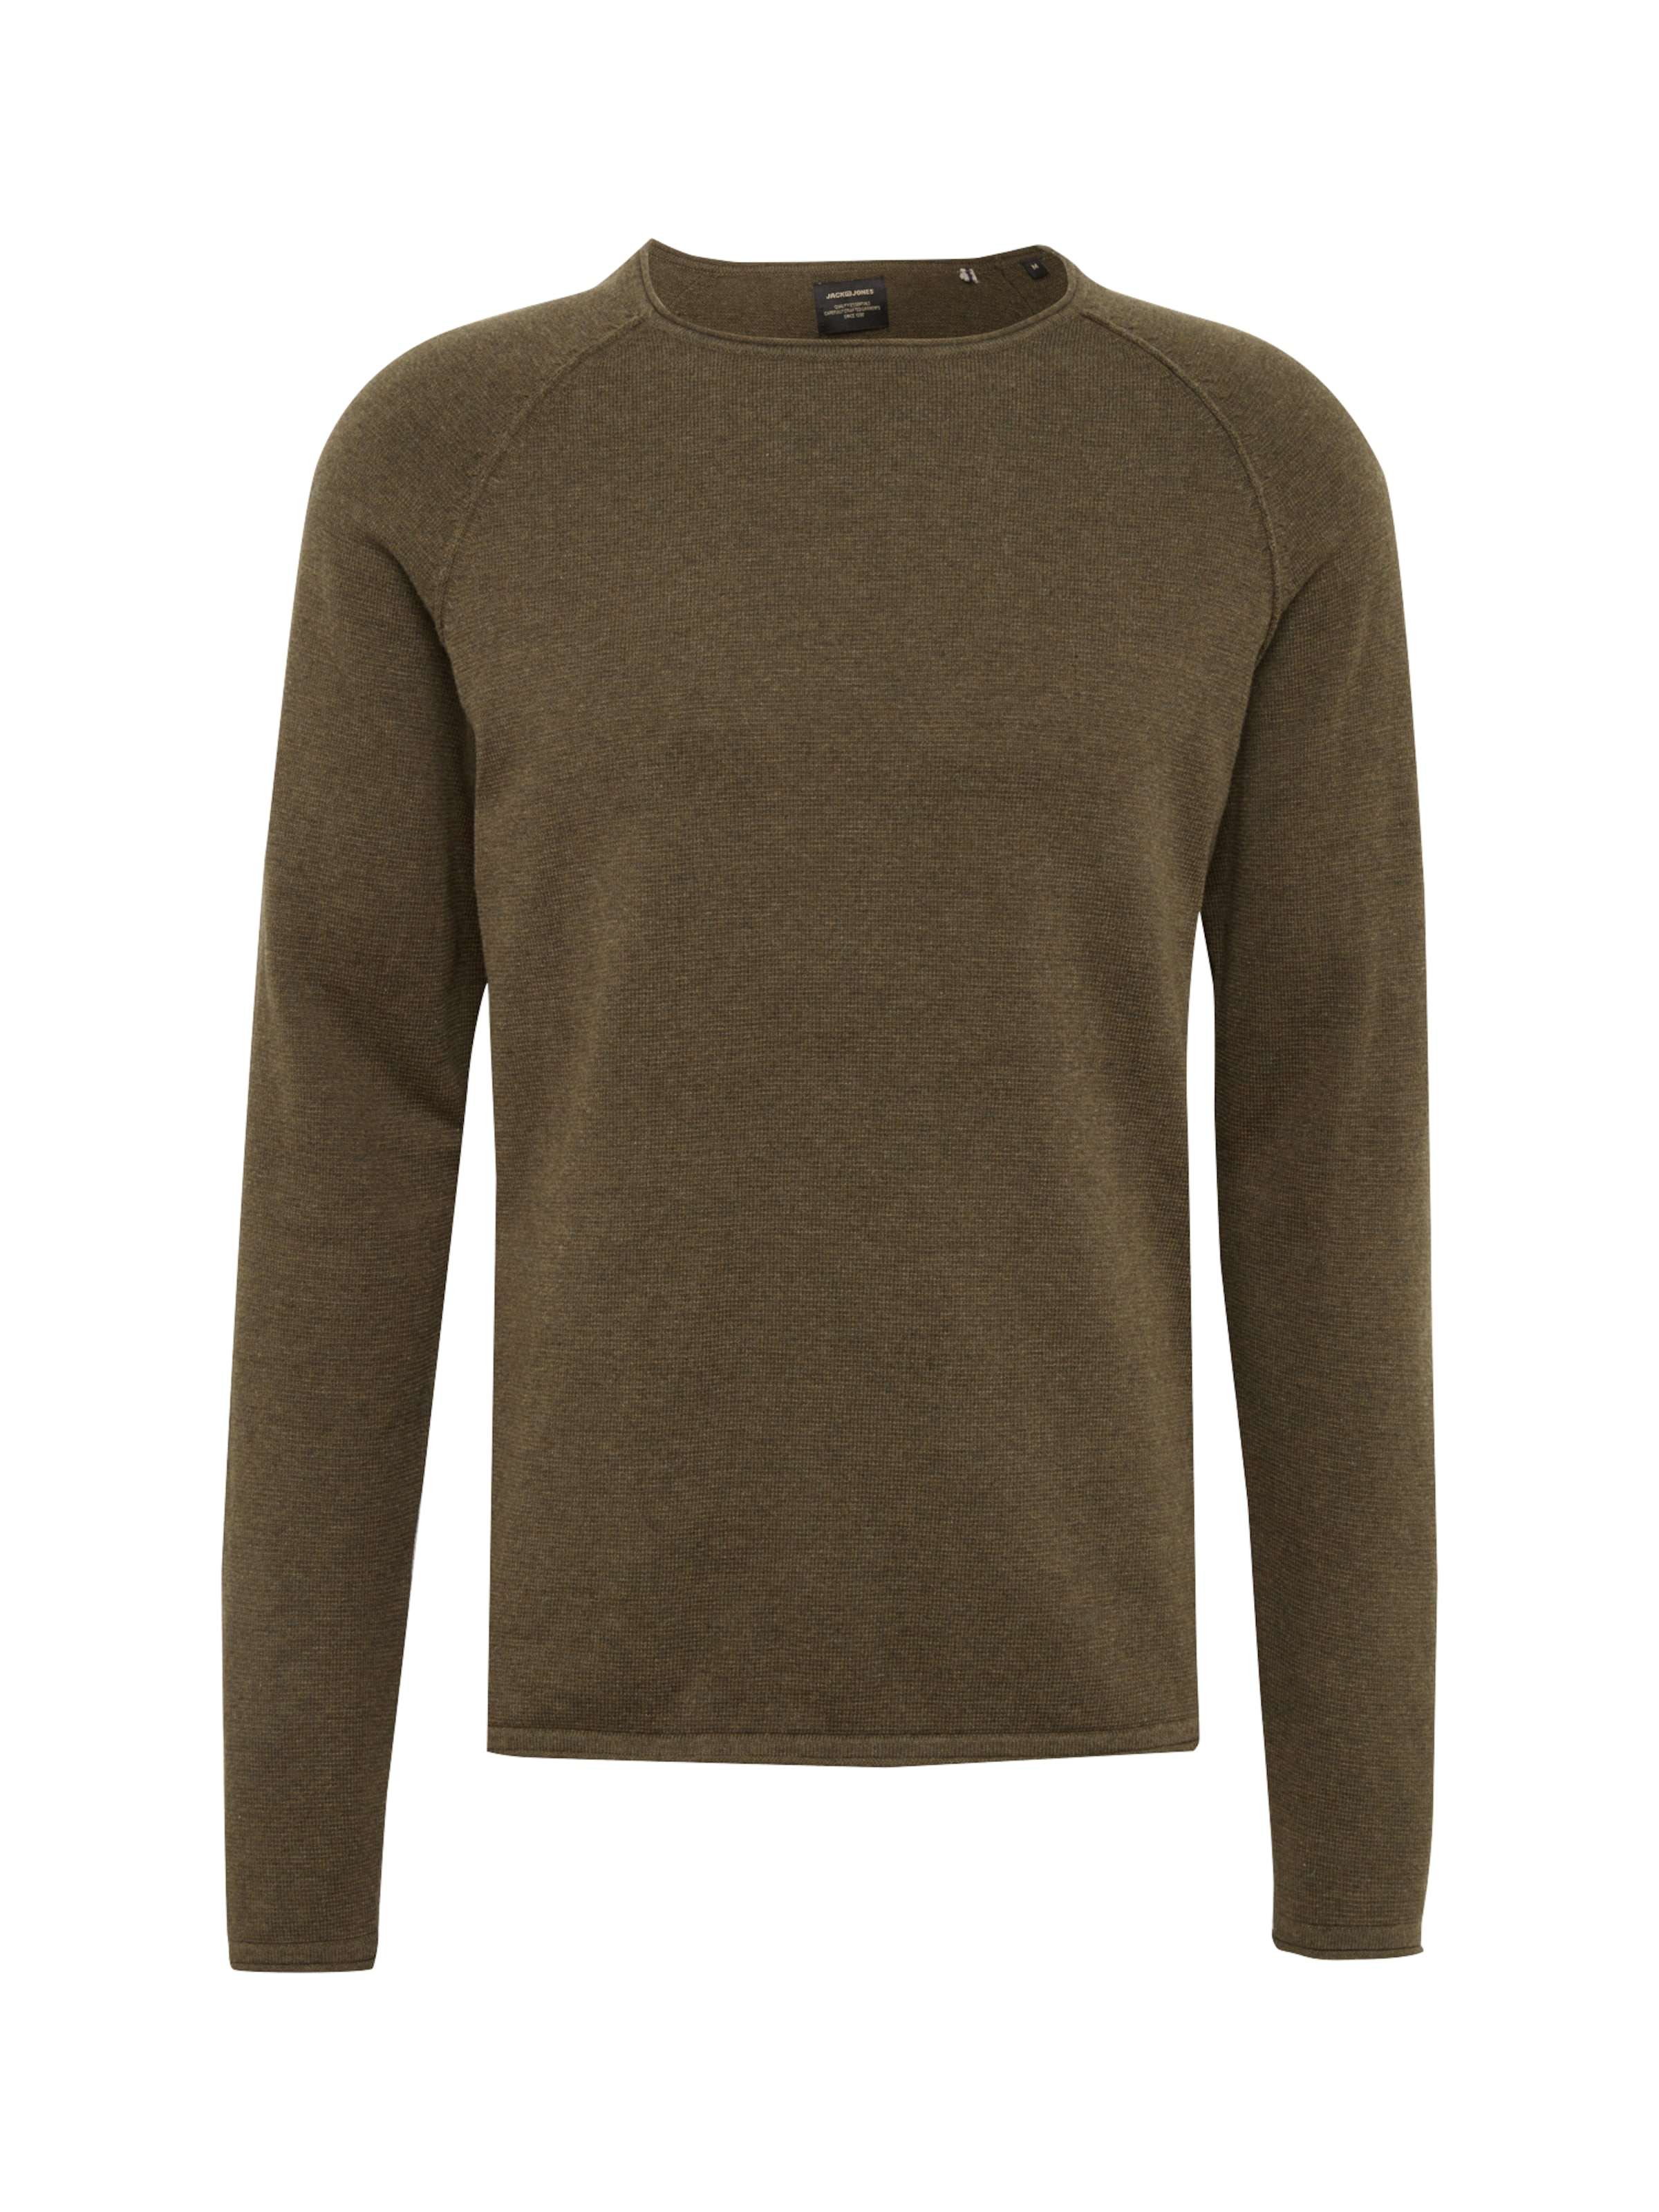 Crew 'jjeunion Pullover Jones Khaki Neck' In Jackamp; Knit 4q5ARjL3